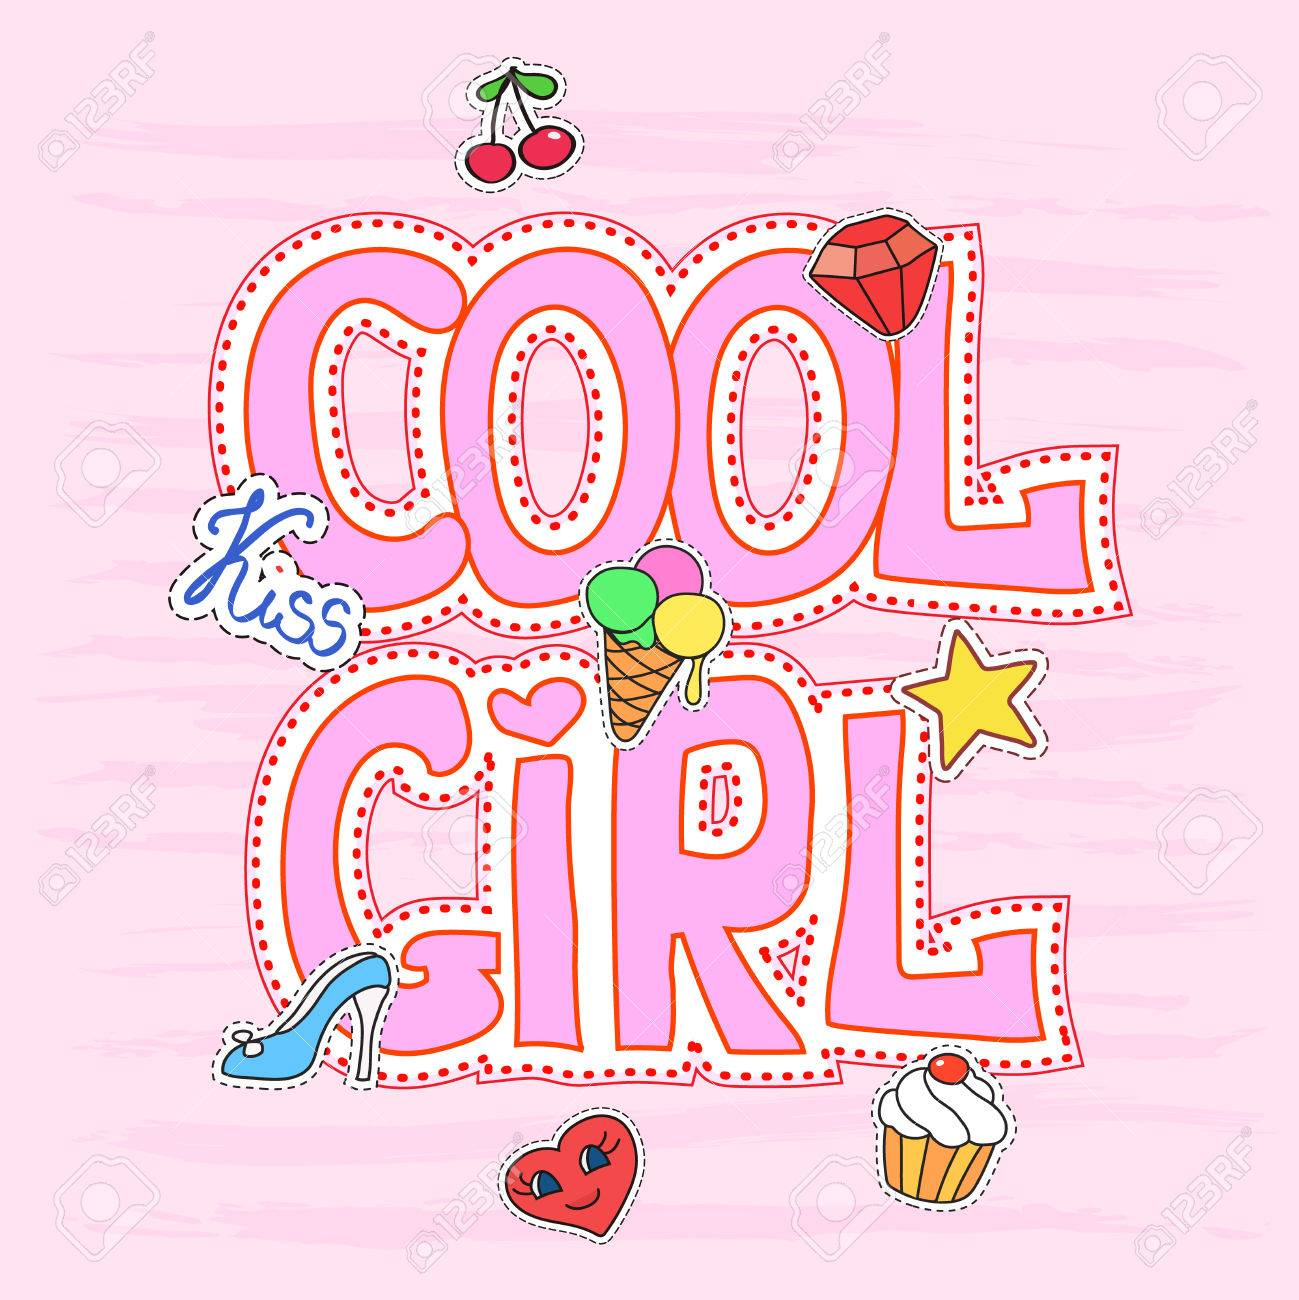 Cool Girl Slogan Graphic With Patches, Pretty Fashion Girlish ...